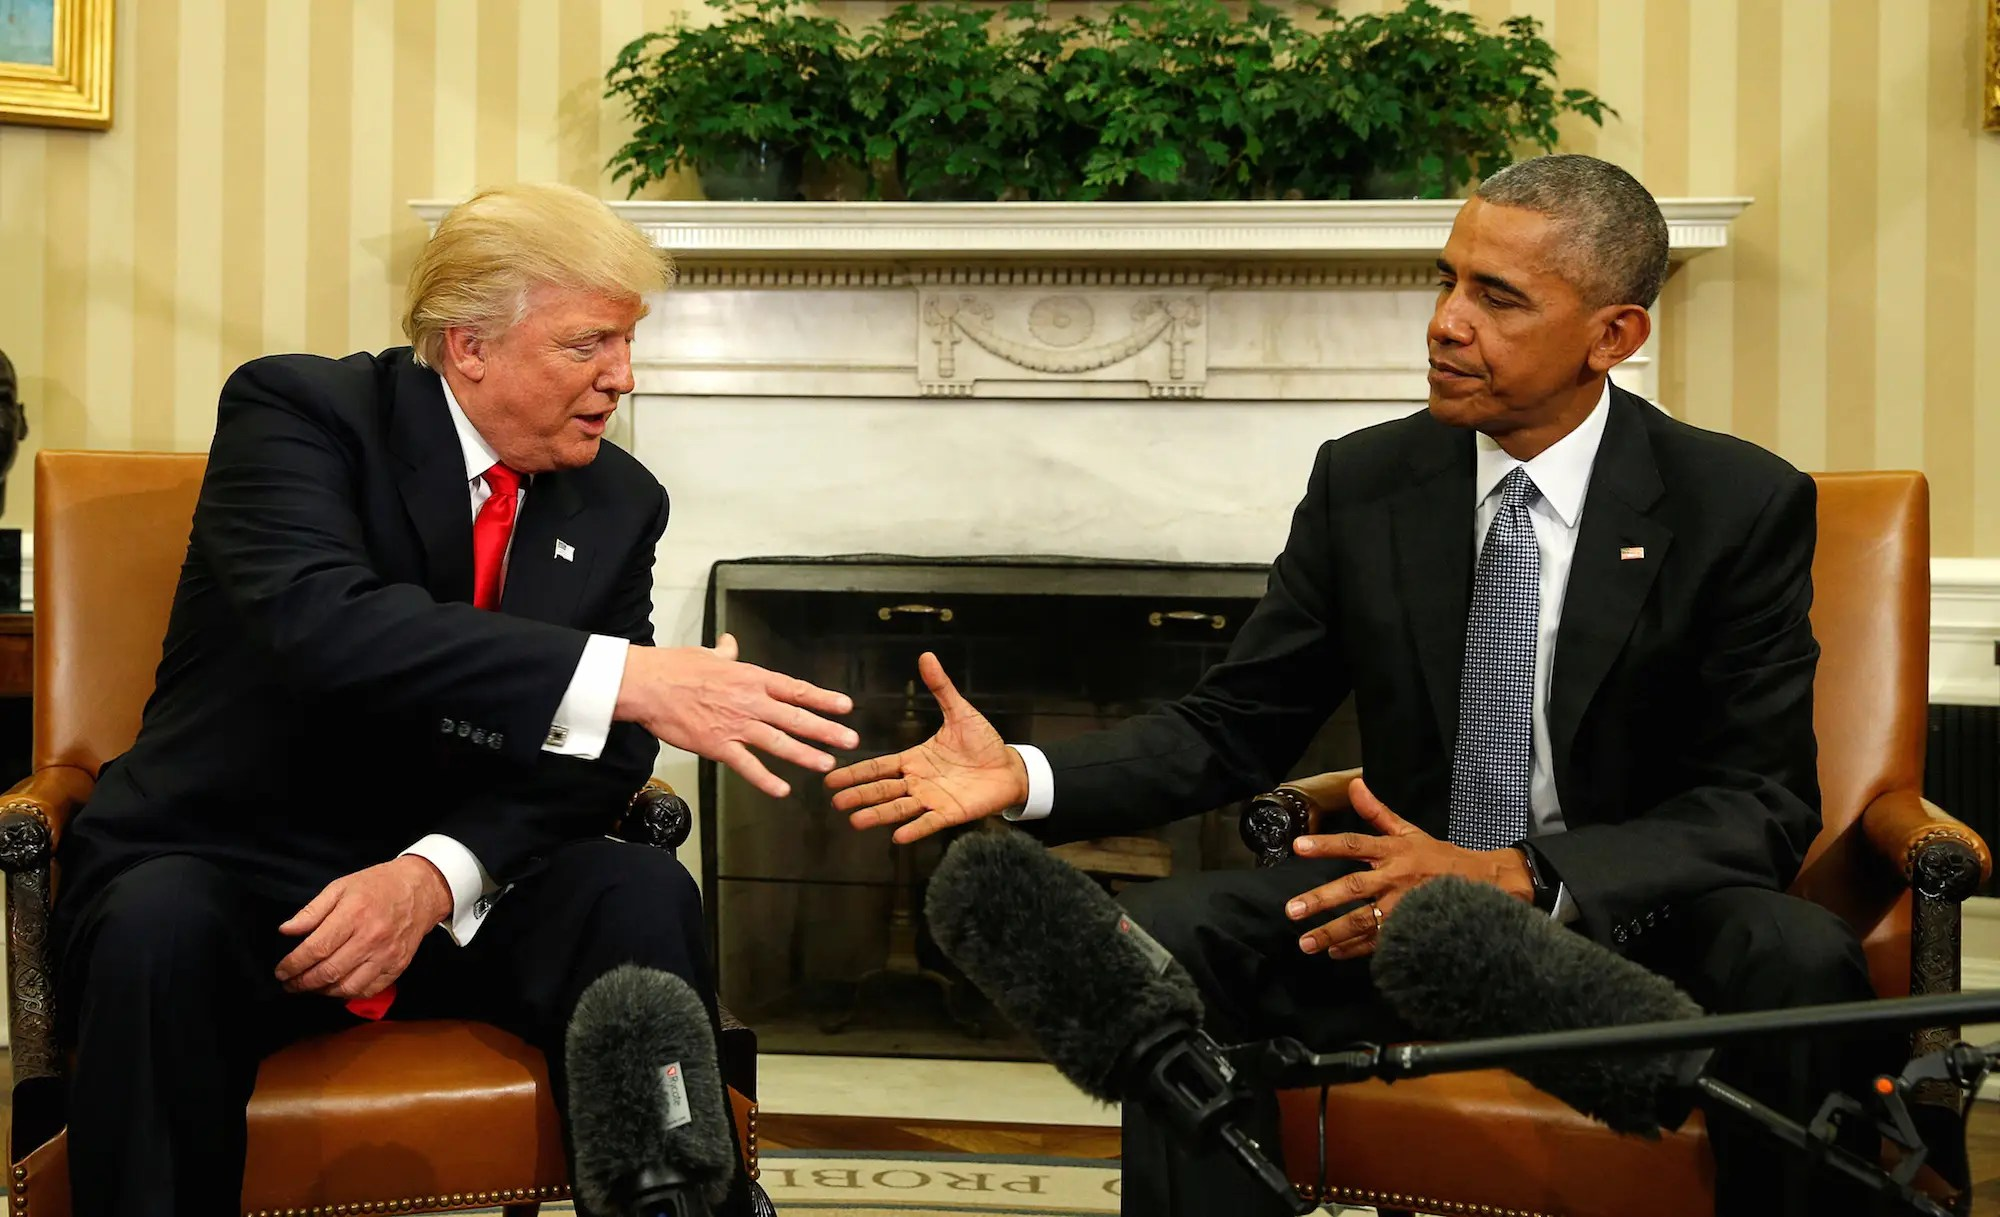 Image result for Photo of Trump and Obama together + free